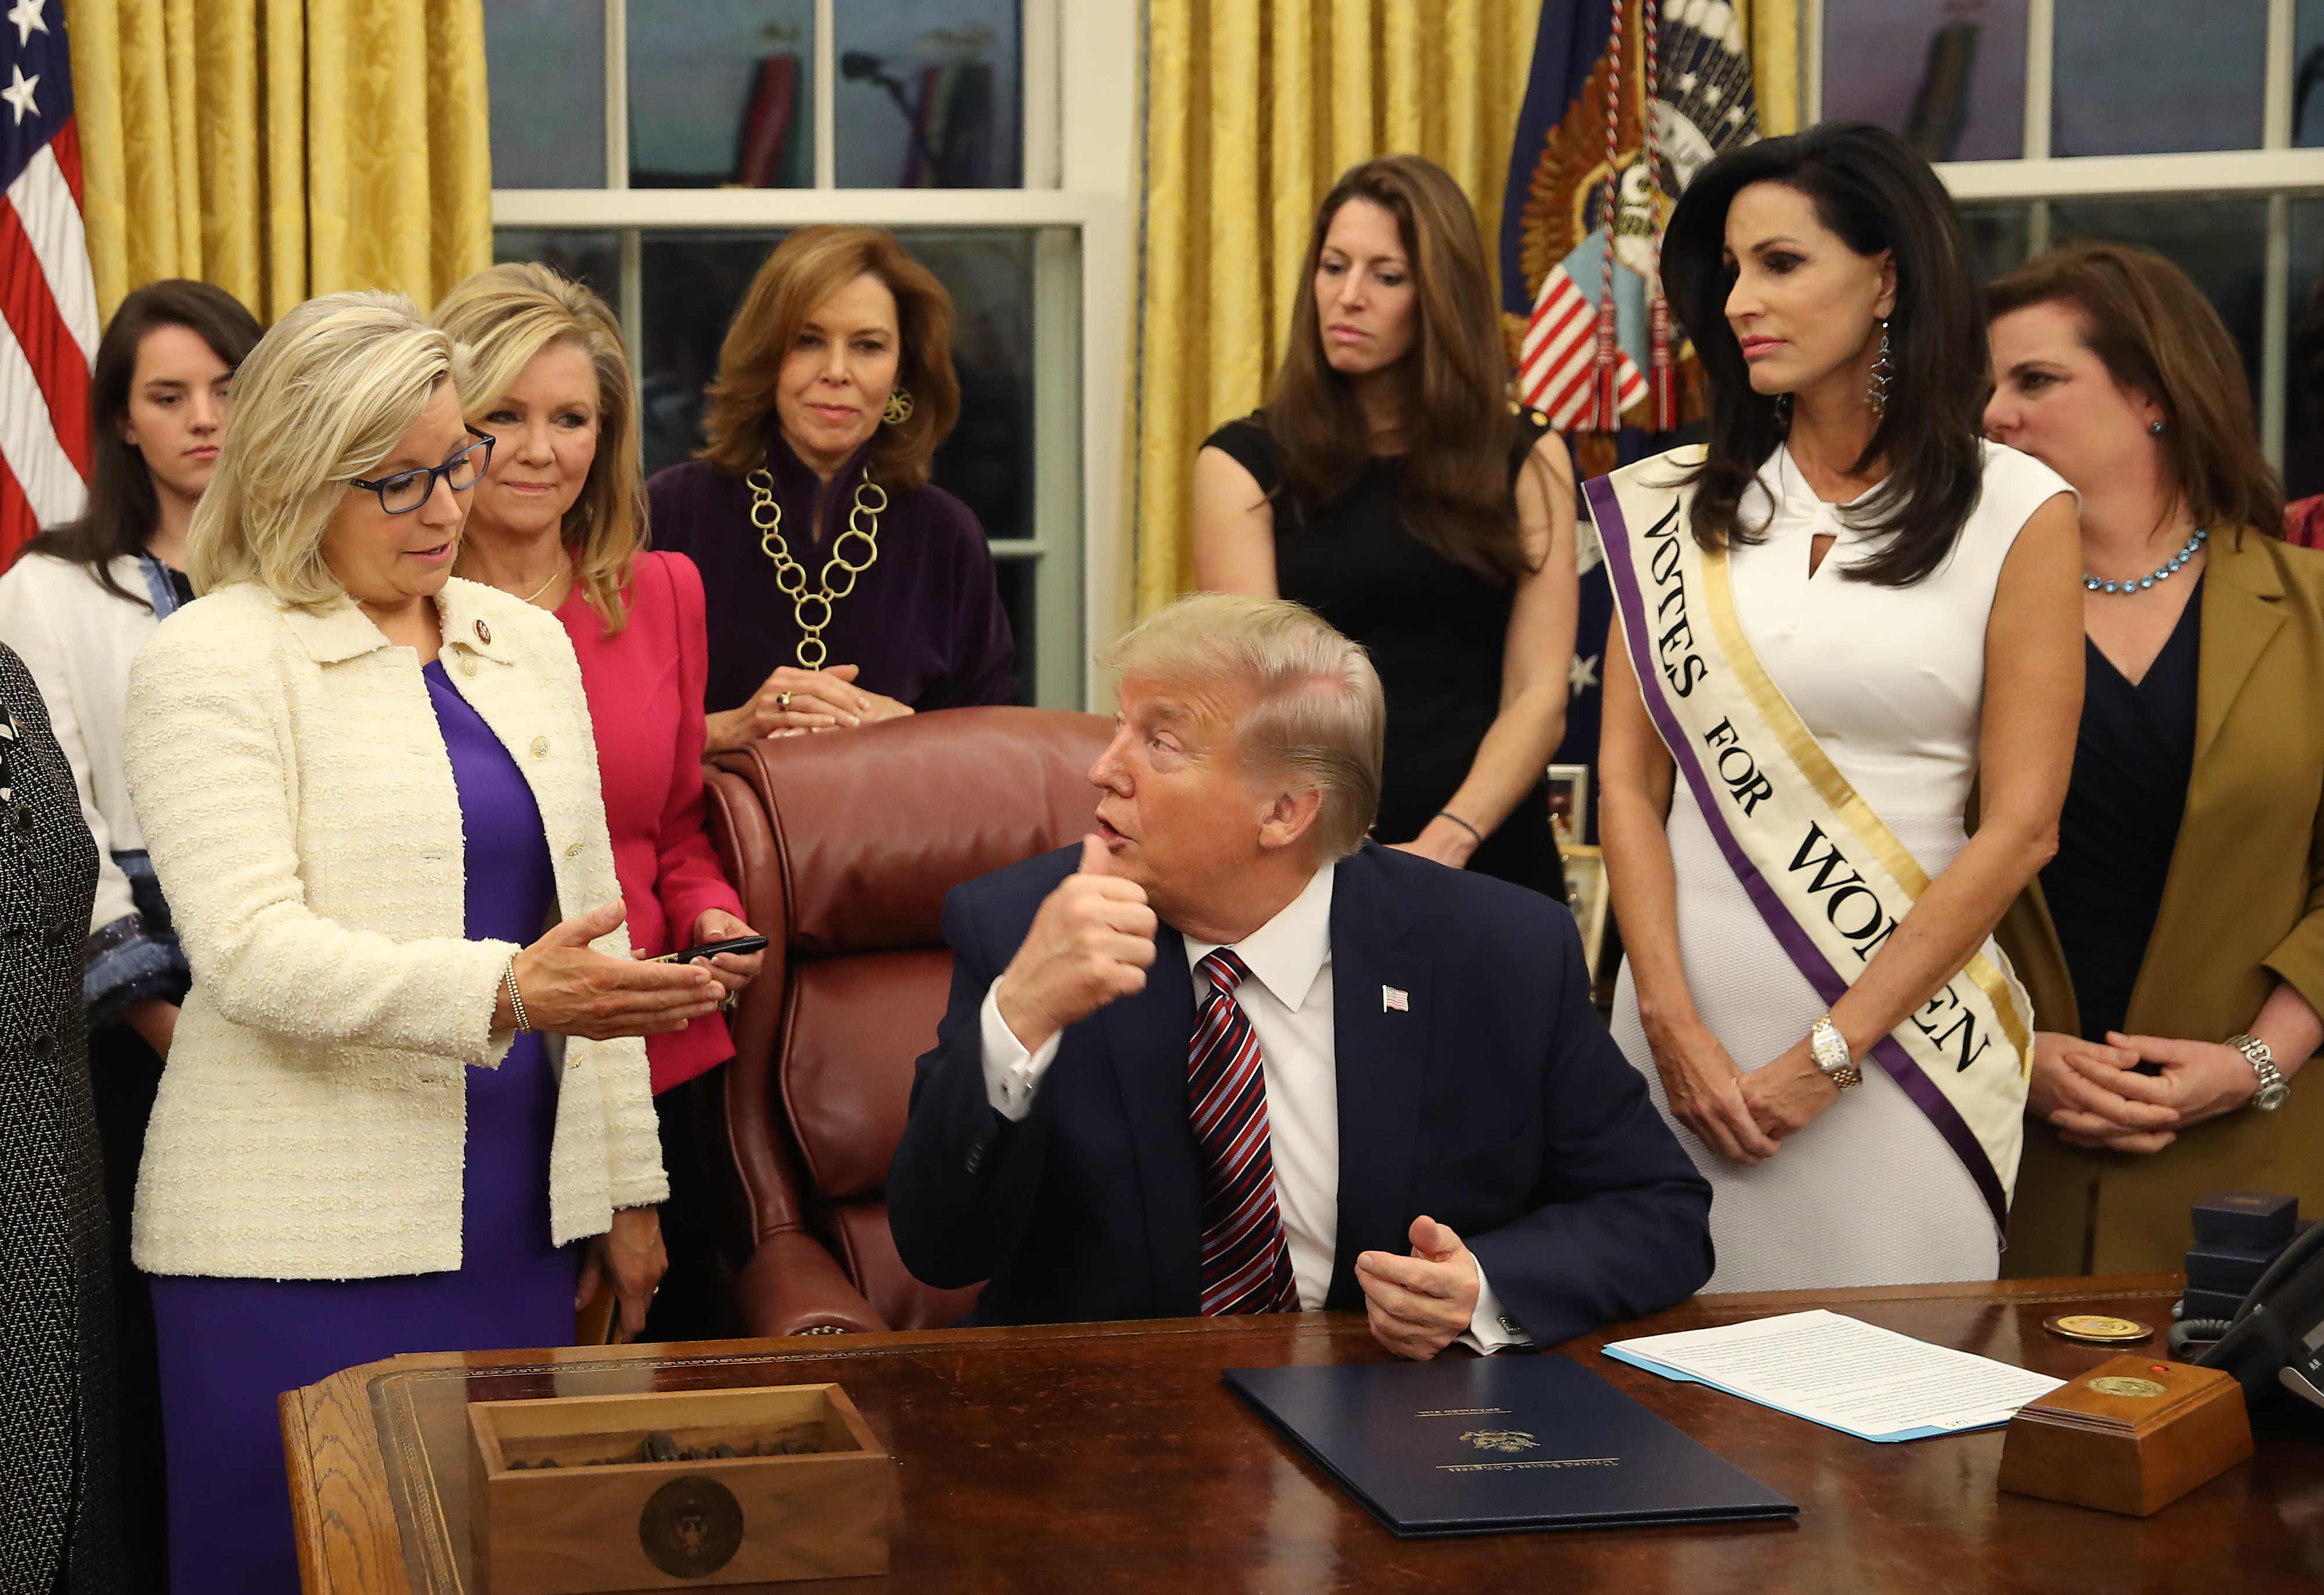 WASHINGTON, DC - NOVEMBER 25: U.S. President Donald Trump talks with Rep. Liz Cheney (R-WY) (L) after signing H.R. 2423, the Women's Suffrage Centennial Commemorative Coin Act, in the Oval Office at the White House on November 25, 2019 in Washington, DC. (Photo by Mark Wilson/Getty Images)